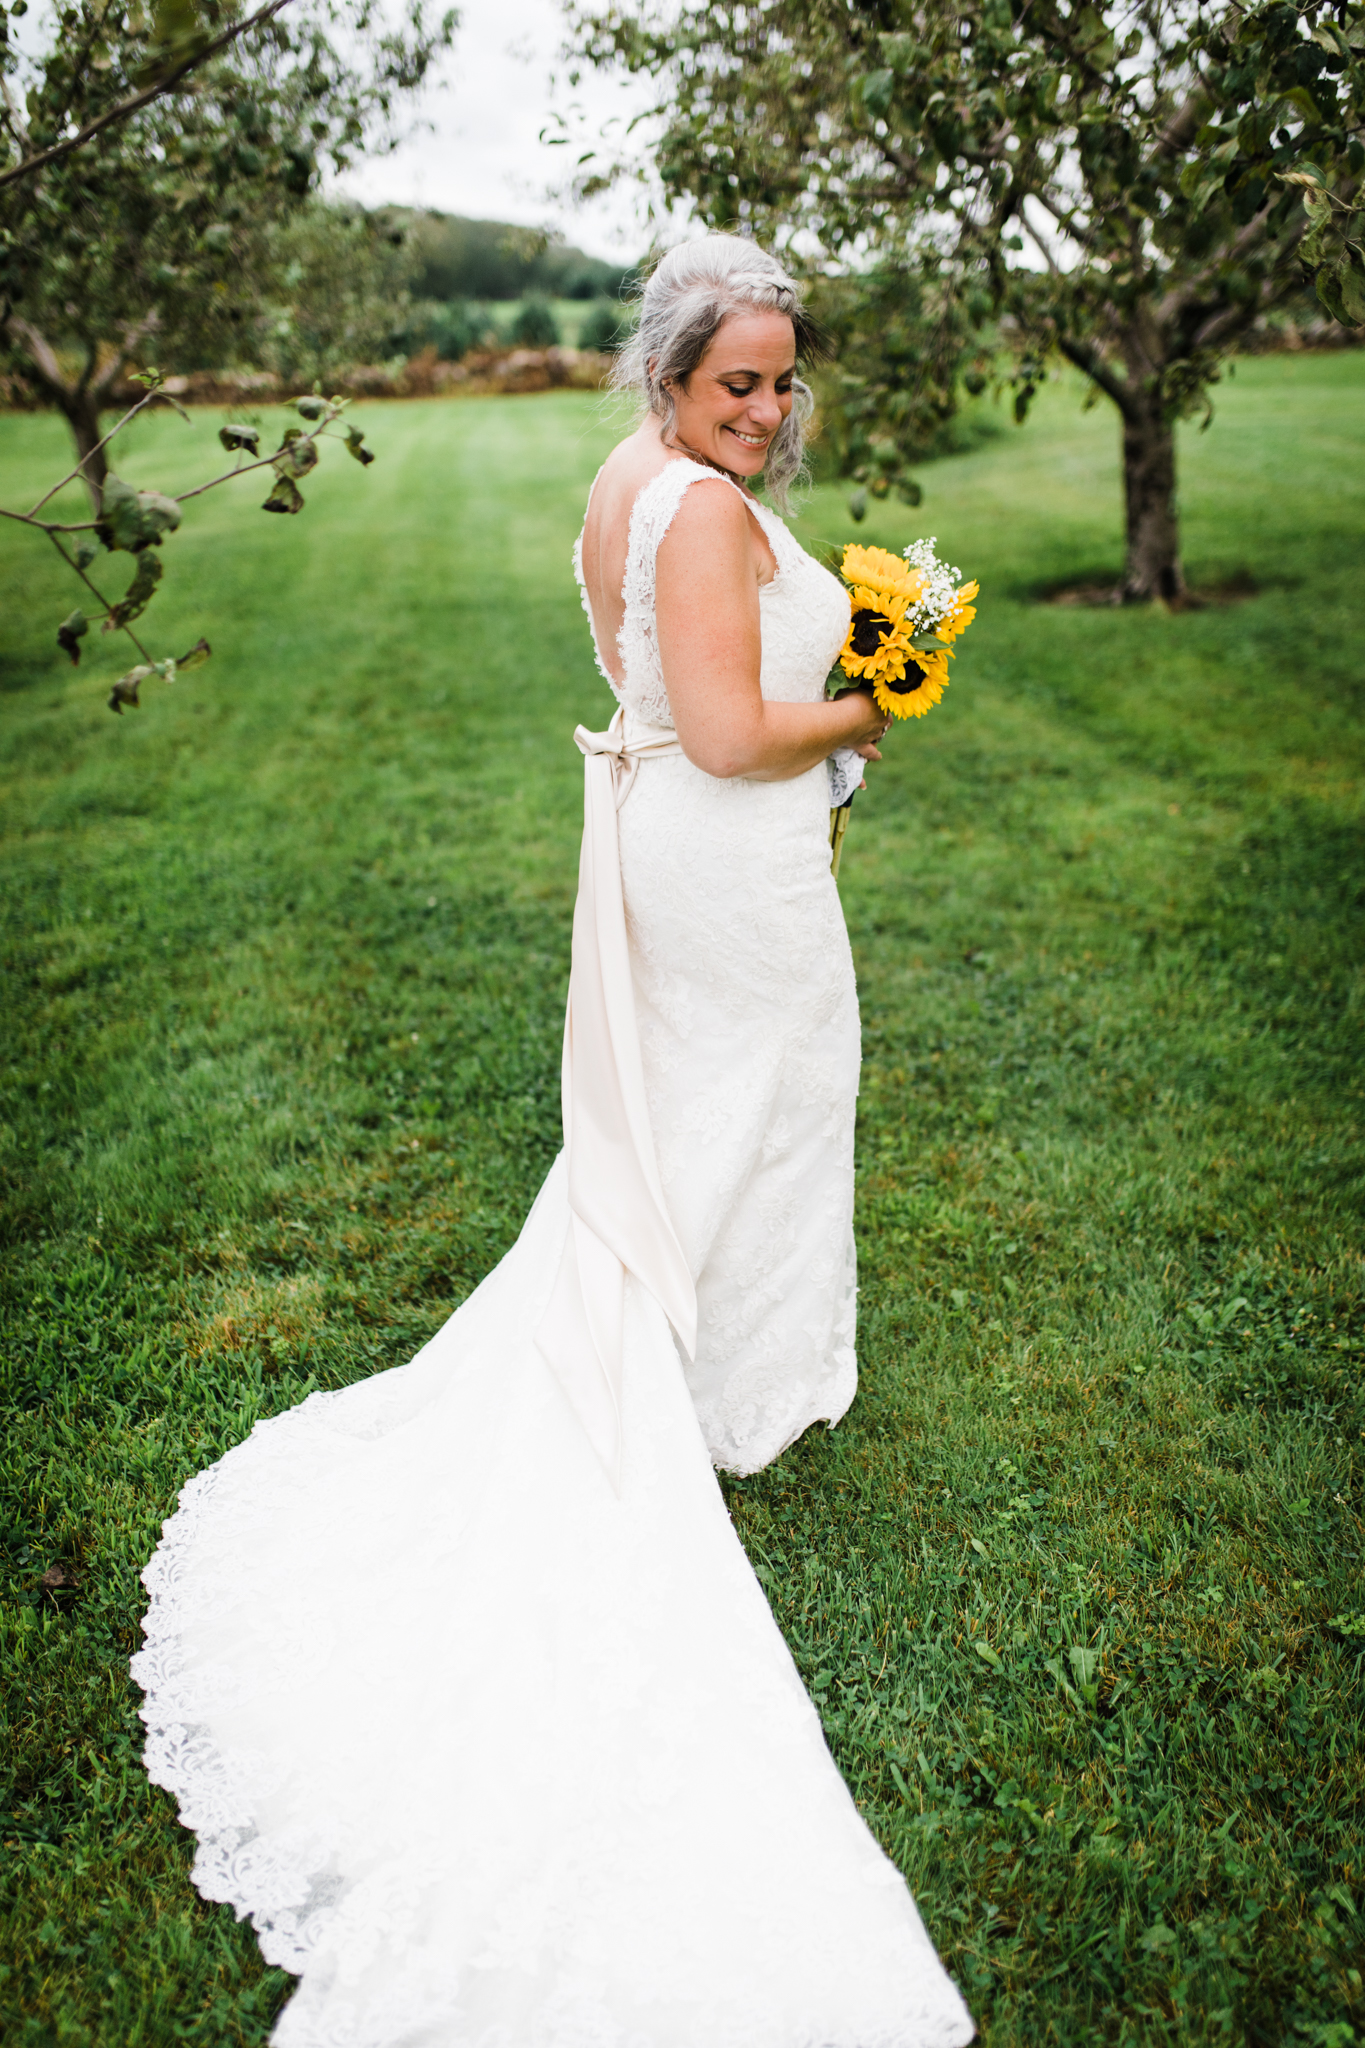 allen hill farm wedding